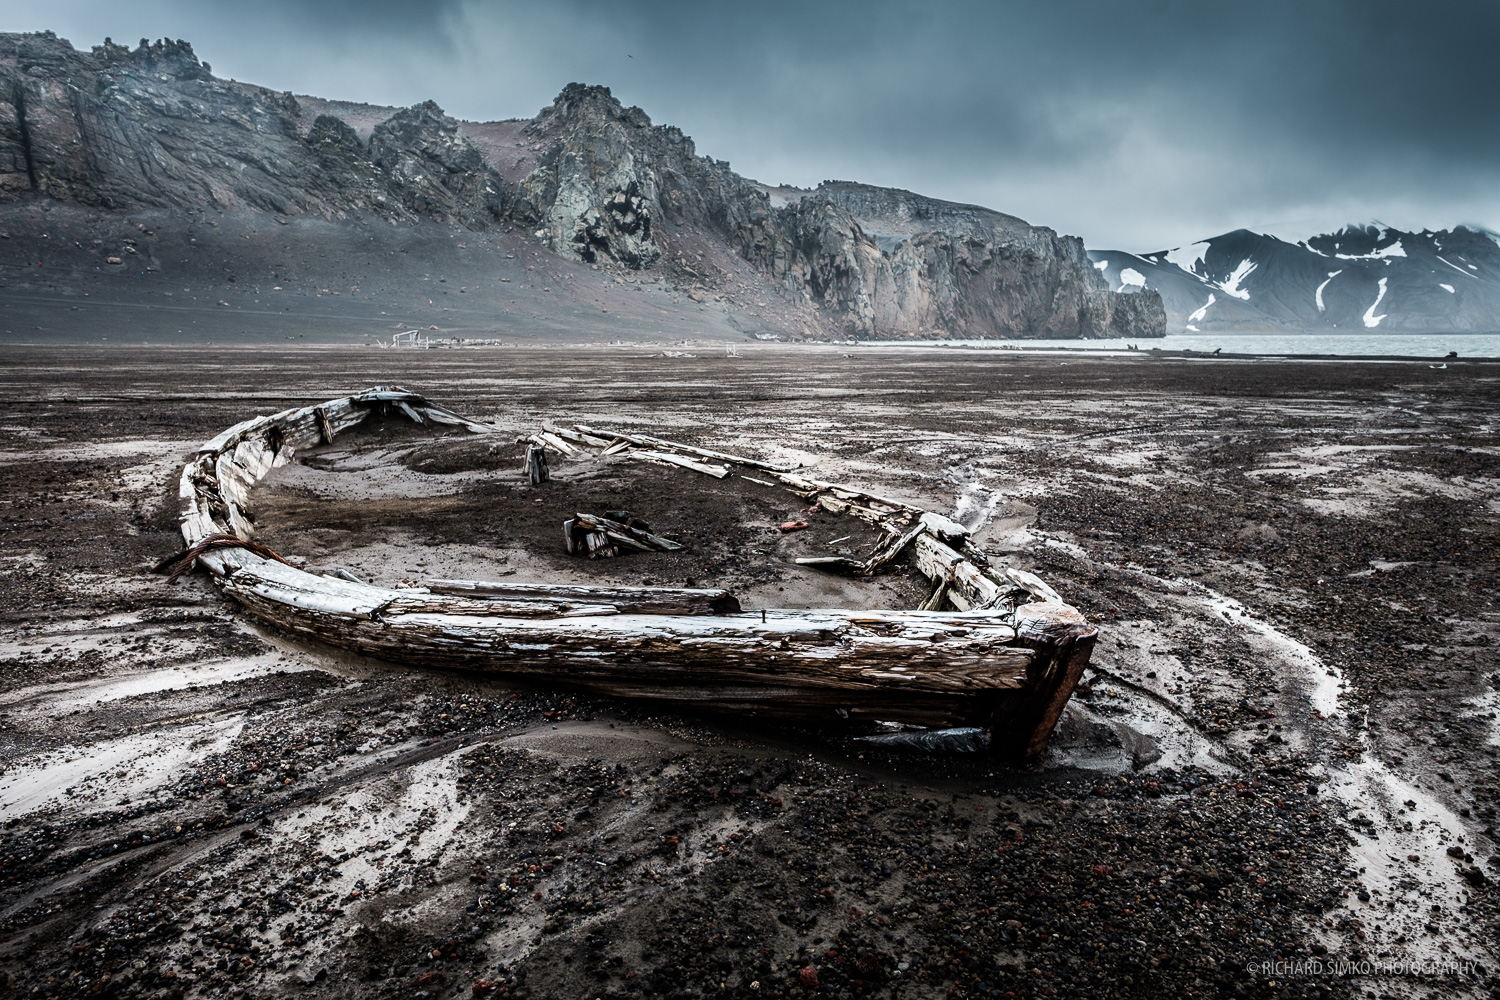 Remains of the boat at Whalers Bay in Deception Island.